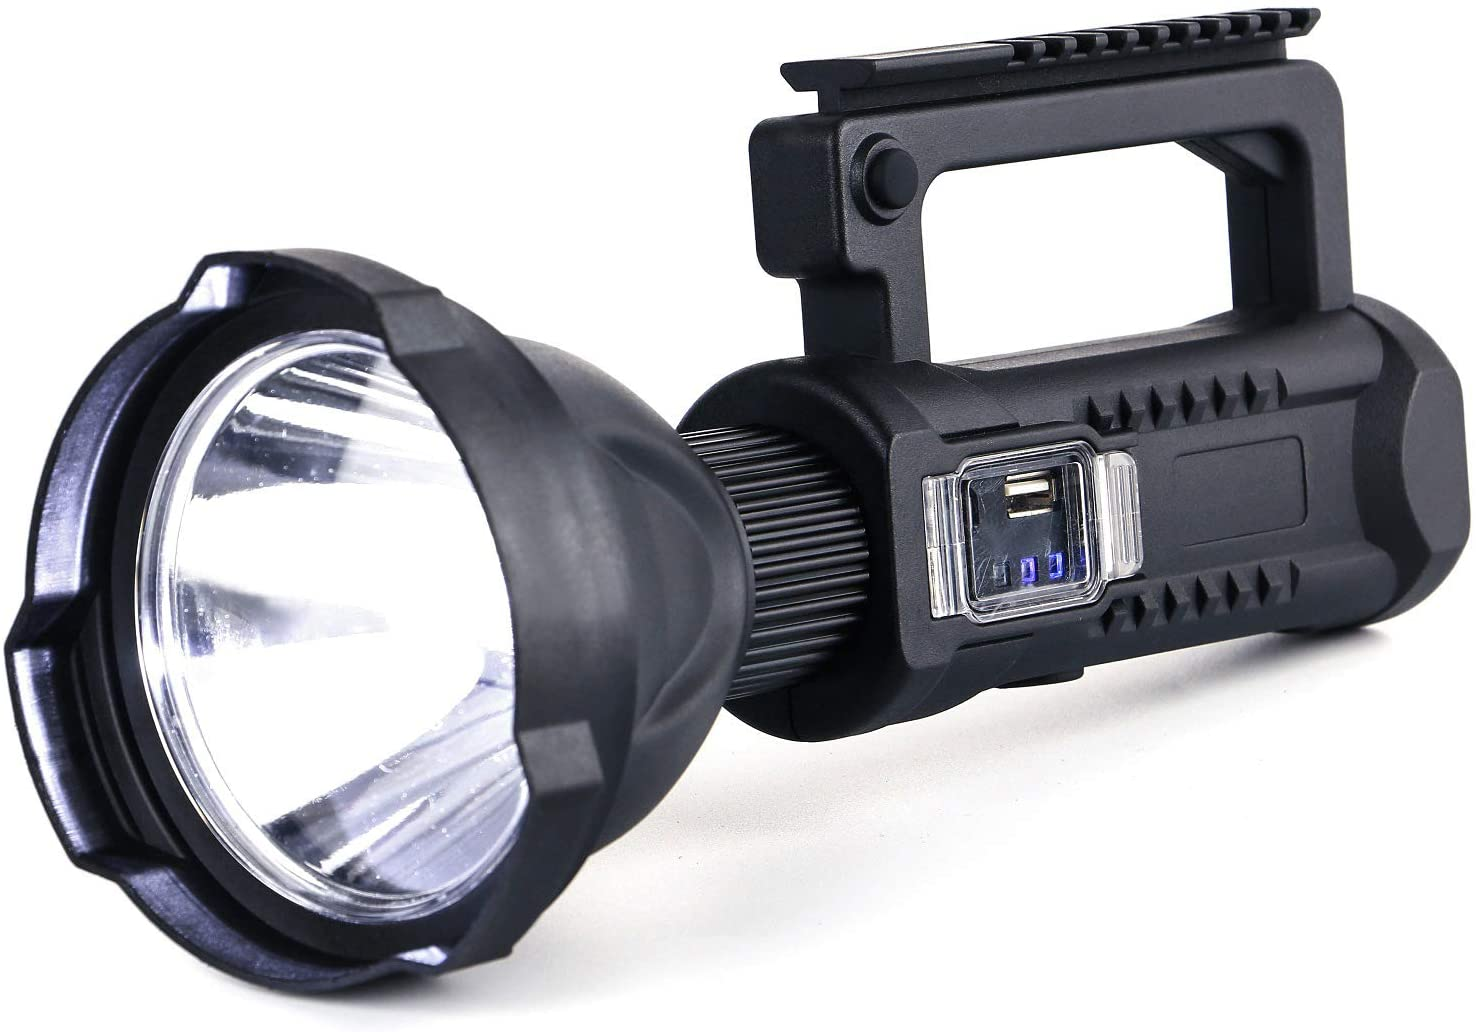 Rechargeable Spotlight 8000 Lumen Waterproof LED Hand Held Flashlight Super Bright High Powered Searchlight 5200 MAH Portable Tactical Light Camping Torch Lantern Work Light with 3 Modes